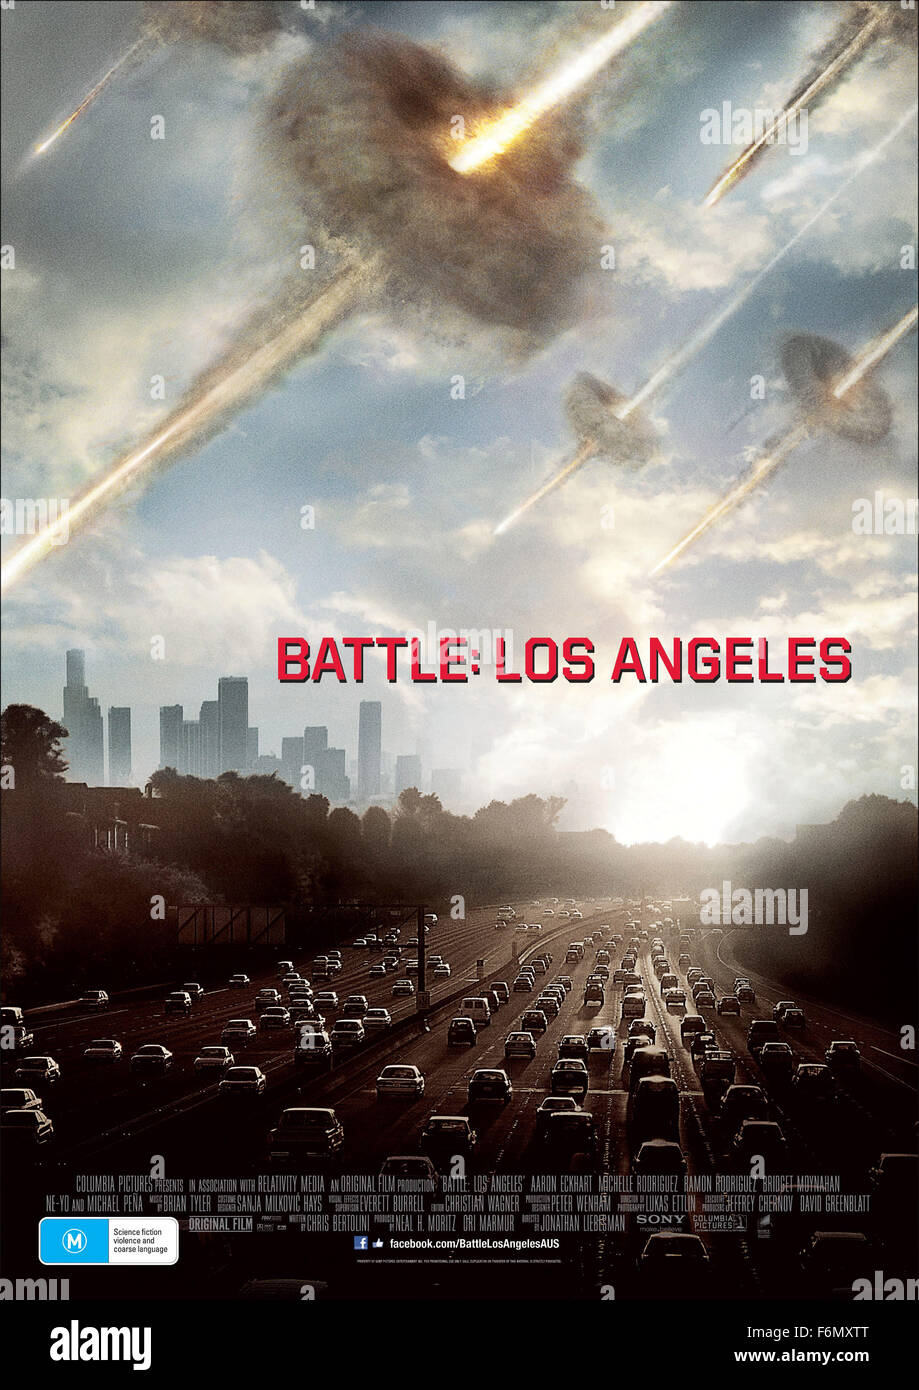 RELEASE DATE: March 11, 2011 MOVIE TITLE: Battle: Los